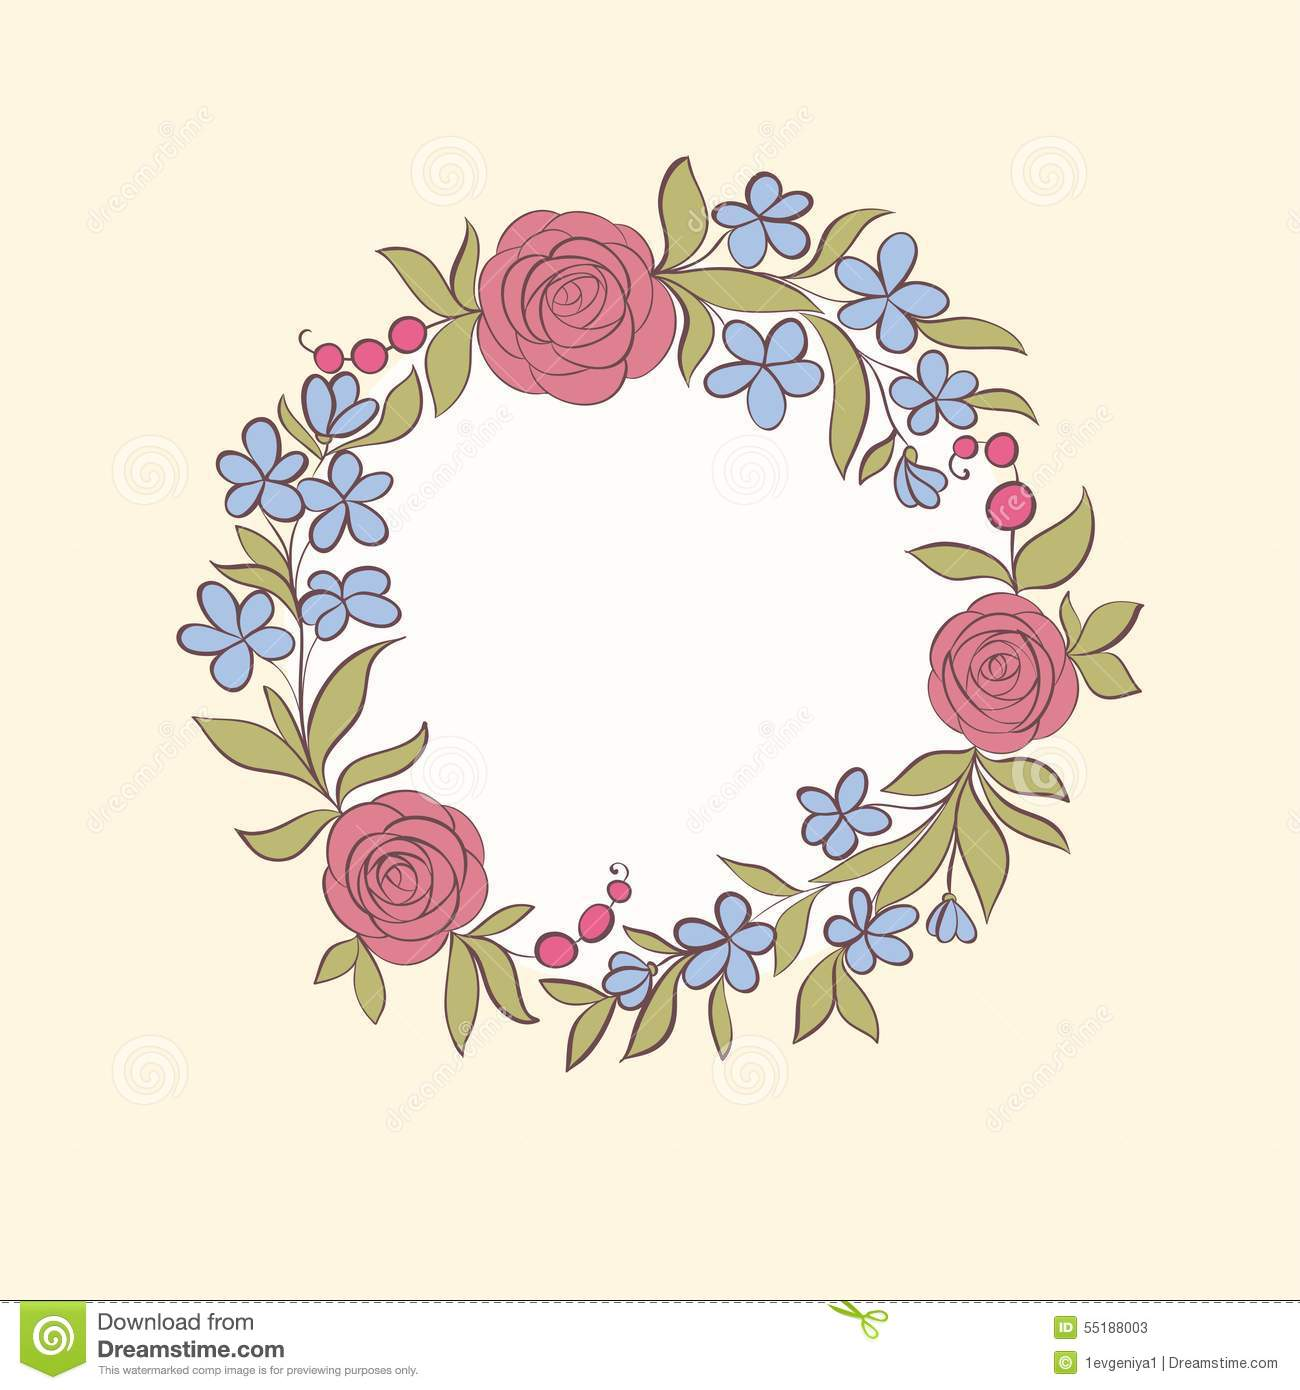 Beautiful Greeting Card Of Floral Wreath Hand Drawn Background For Cards And Invitations The Wedding Birthday Mothe